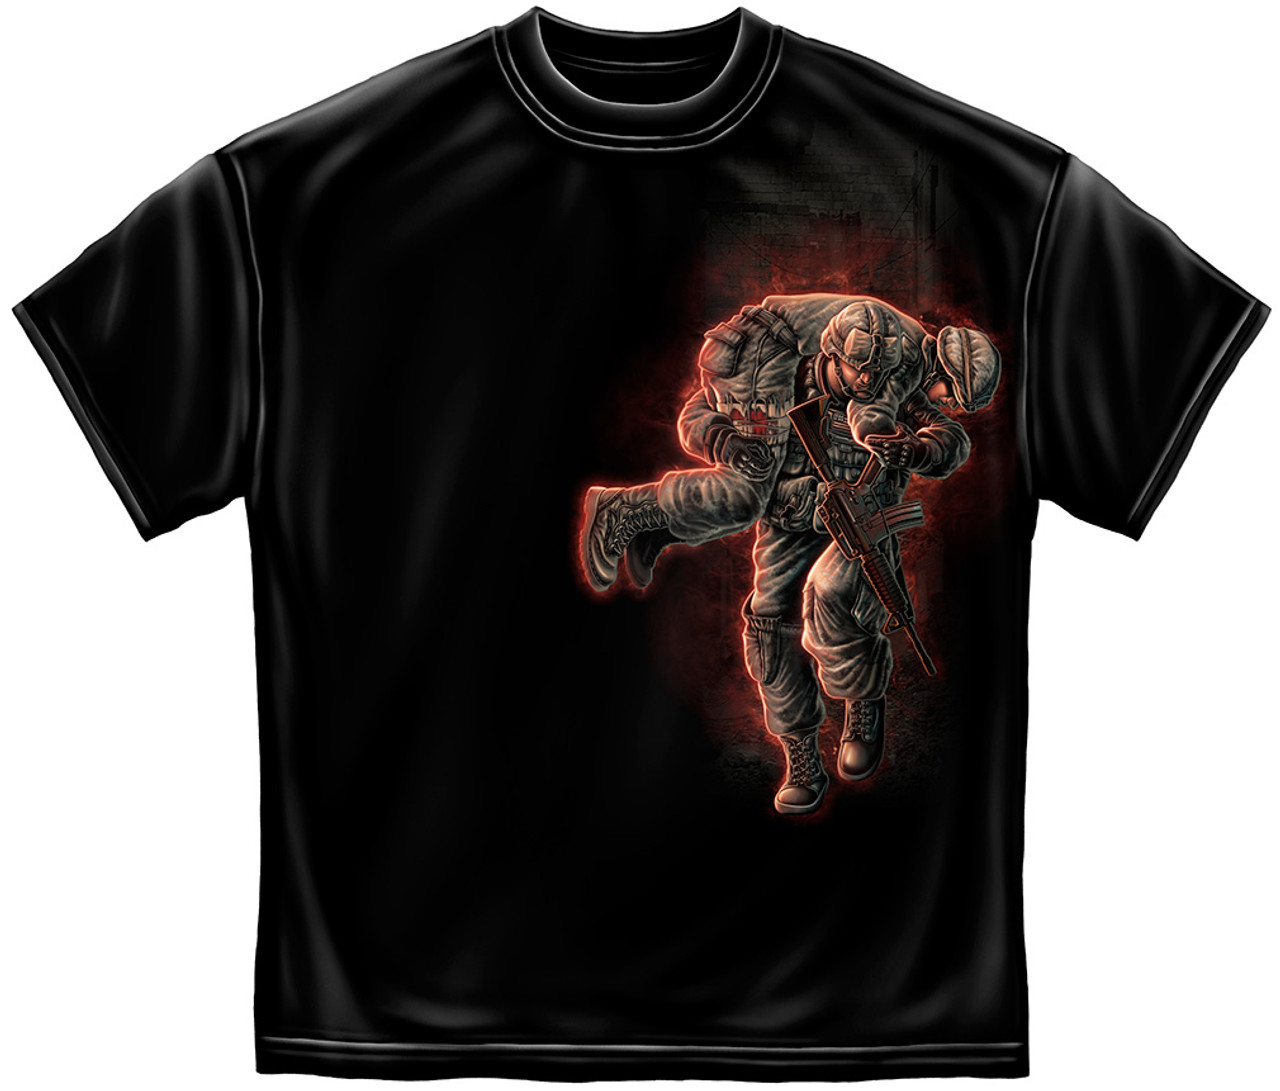 """(OFFICIALLY-LICENSED-U.S.VETERAN,""""U.S.SOLDIER-NO-ONE-GETS-LEFT-BEHIND"""",ALL-DOUBLE-SIDED-IN-BLACK,NICE-GRAPHIC-PRINTED-PREMIUM-TEES:)"""